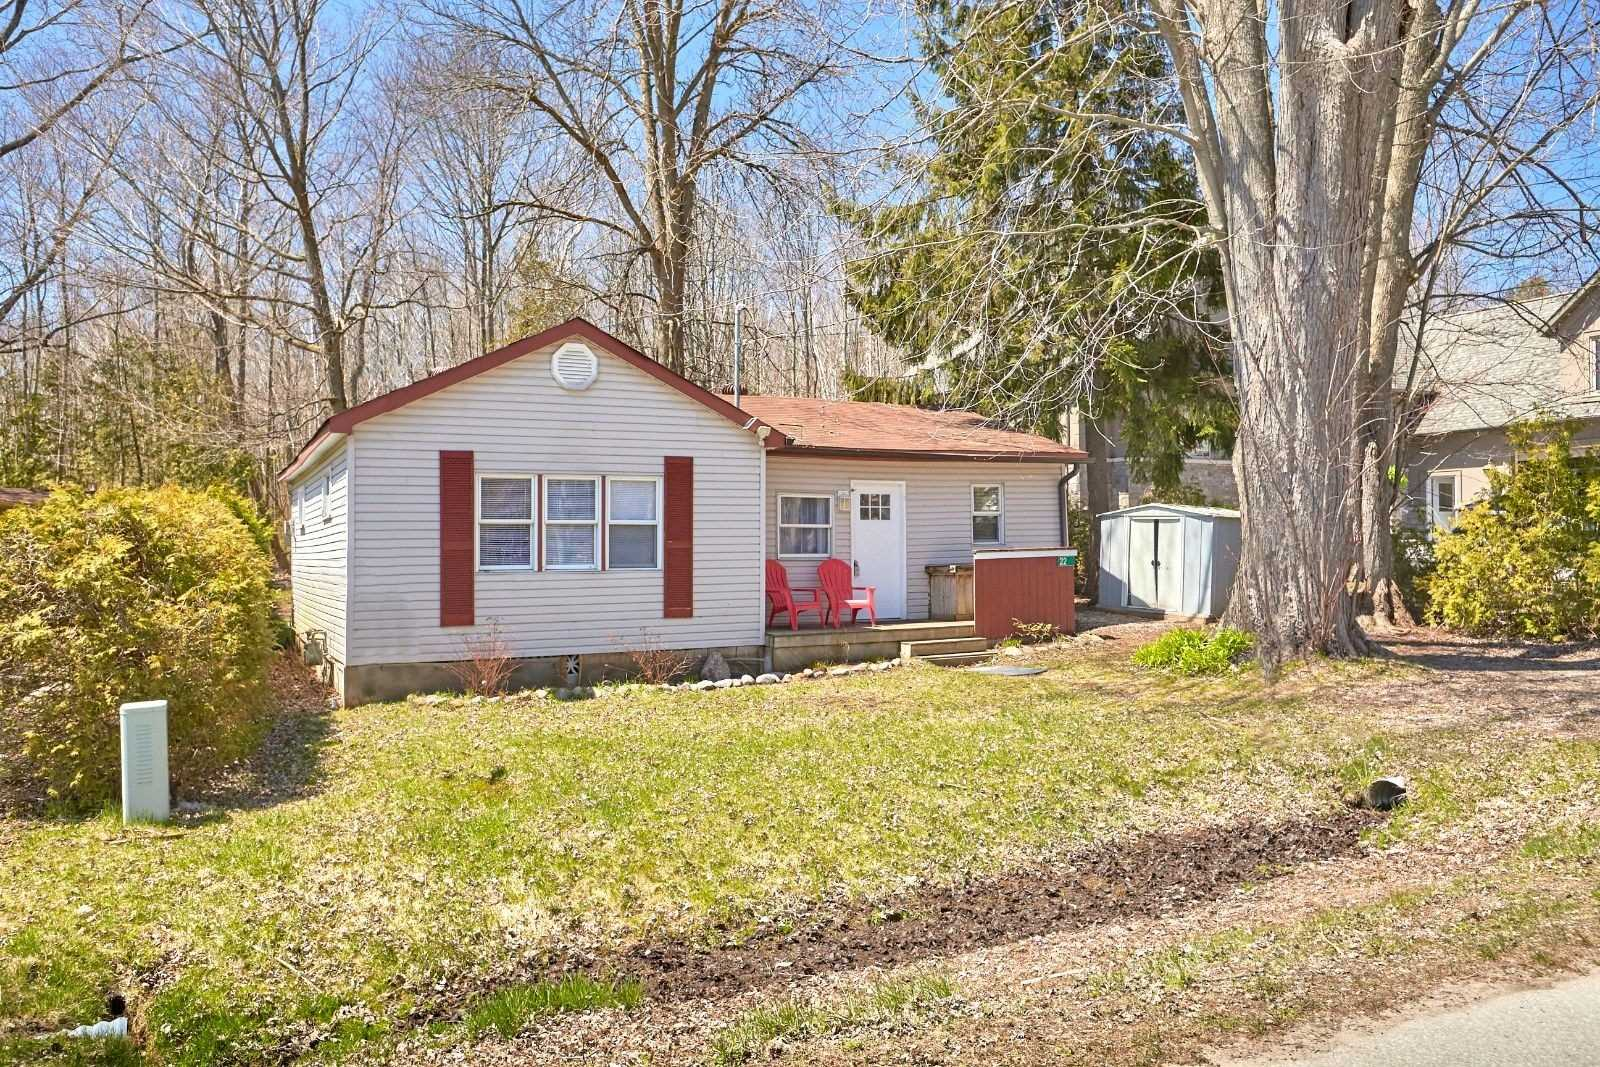 pictures of house for sale MLS: S4723879 located at 22 Park View Ave, Oro-Medonte L0L2E0